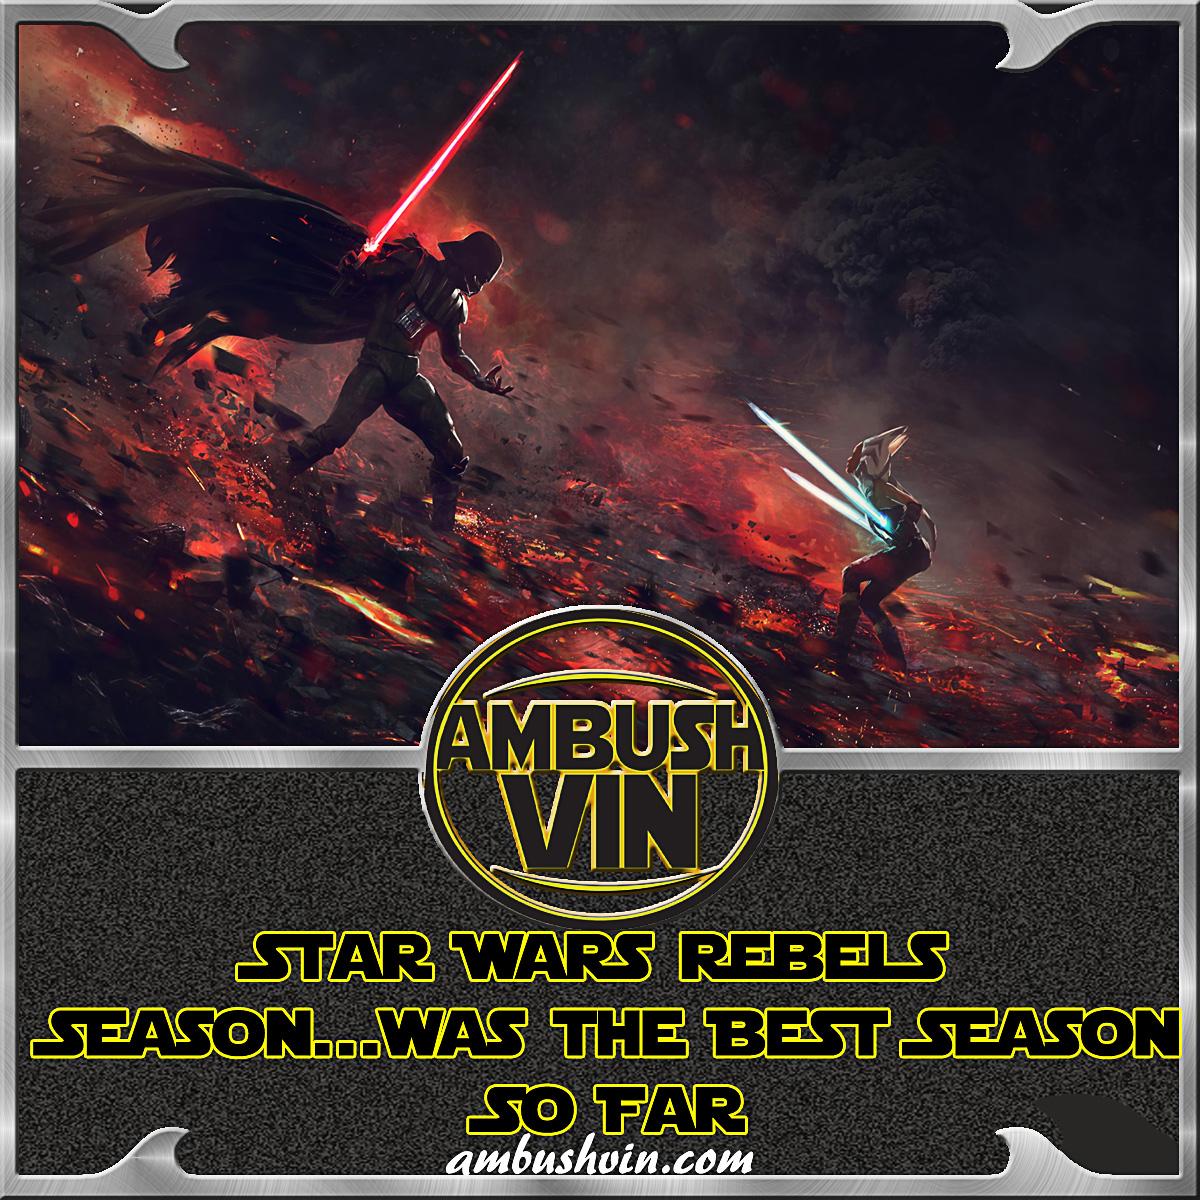 Star Wars Rebels Season…was the Best Season So Far